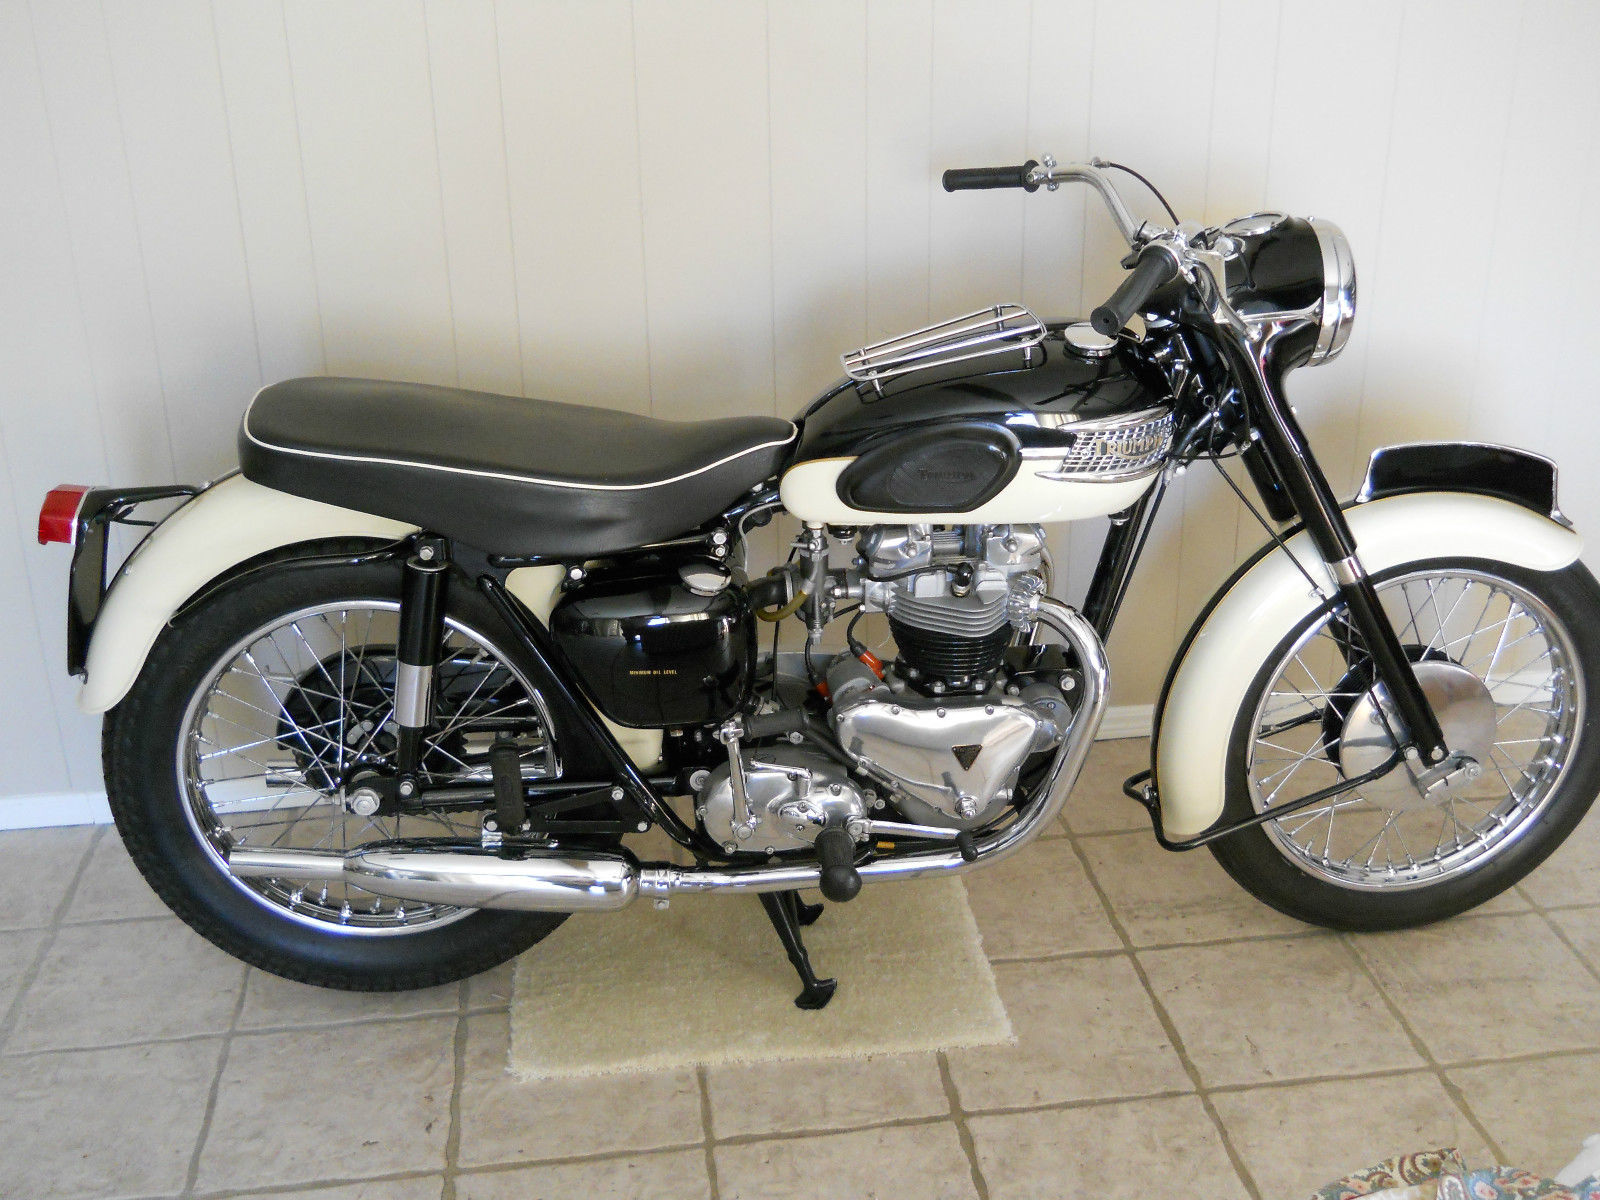 Triumph Tiger T110 - 1958 - Right Side View, Gas Tank, Seat, Frame and Handlebars.